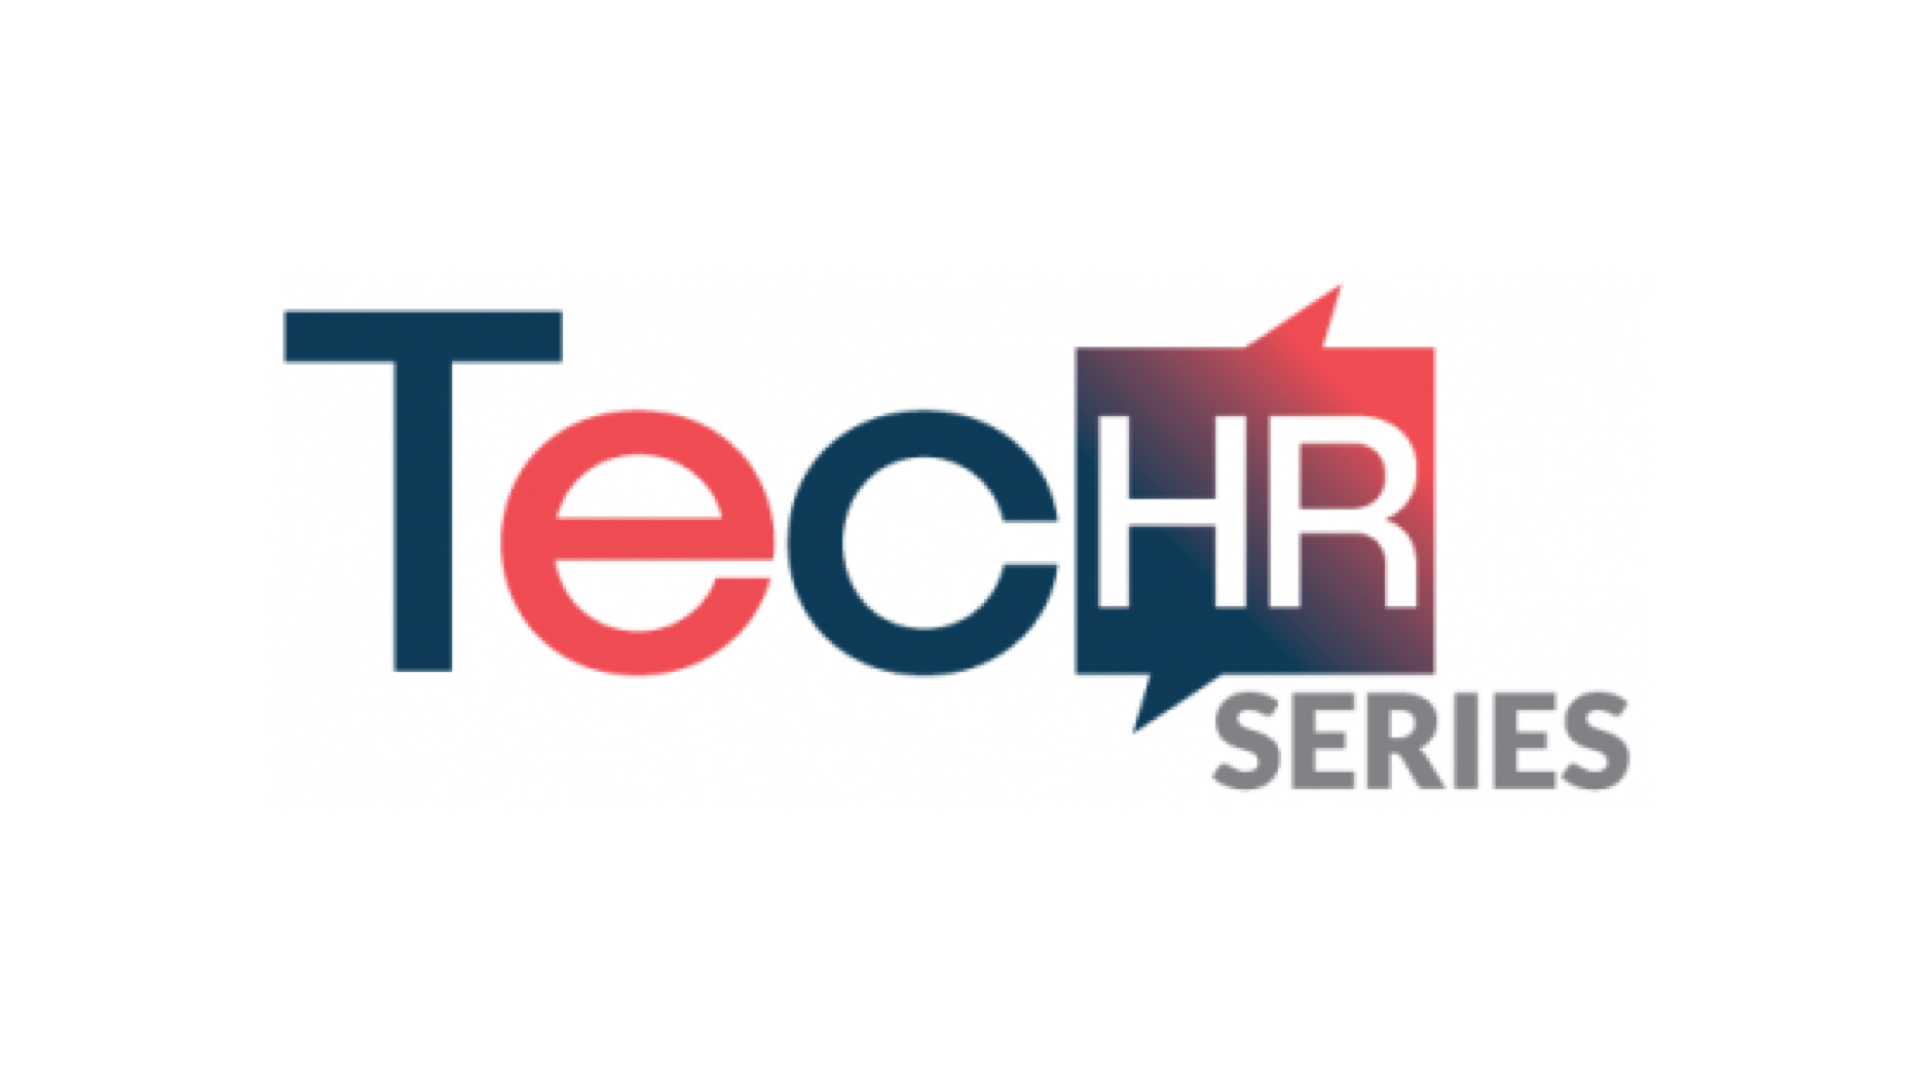 TecHR Series.001